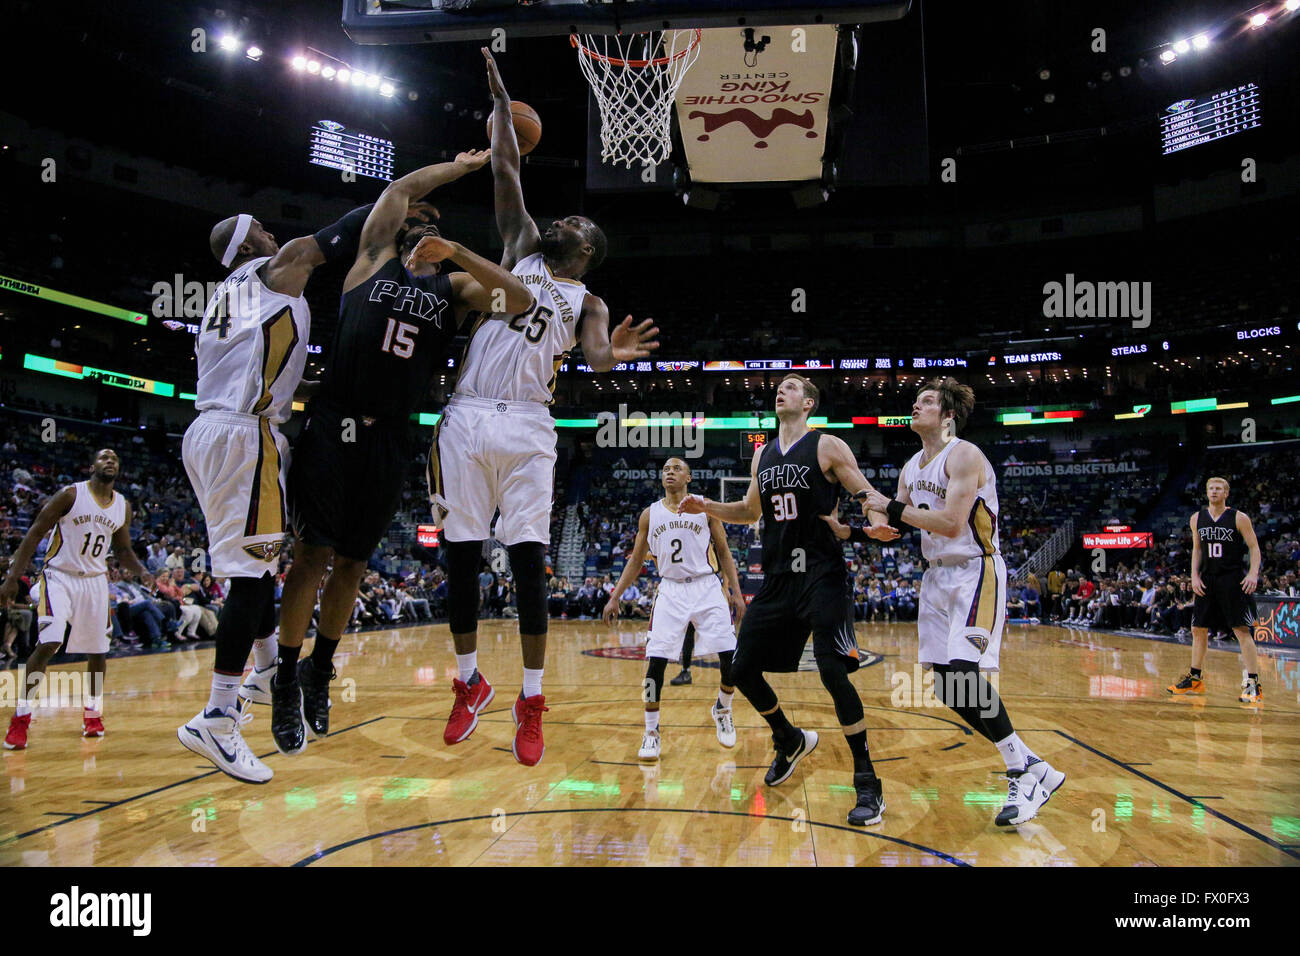 New Orleans La Usa 09th Apr 2016 New Orleans Pelicans